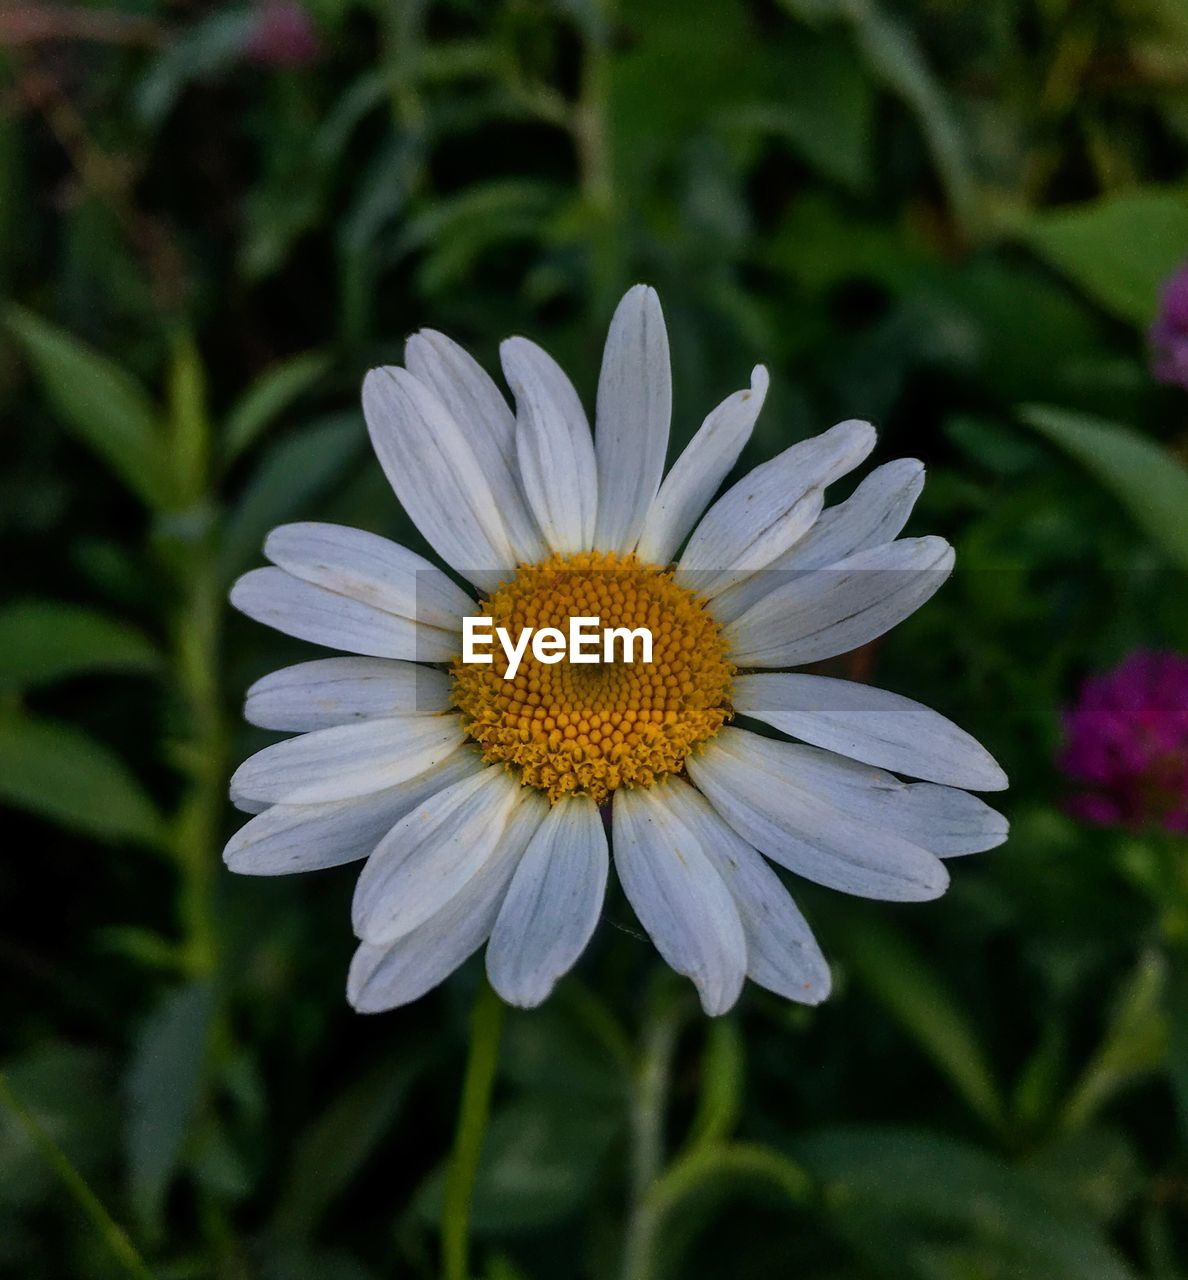 flower, flowering plant, vulnerability, fragility, freshness, petal, plant, flower head, beauty in nature, growth, inflorescence, close-up, pollen, nature, focus on foreground, white color, no people, day, daisy, outdoors